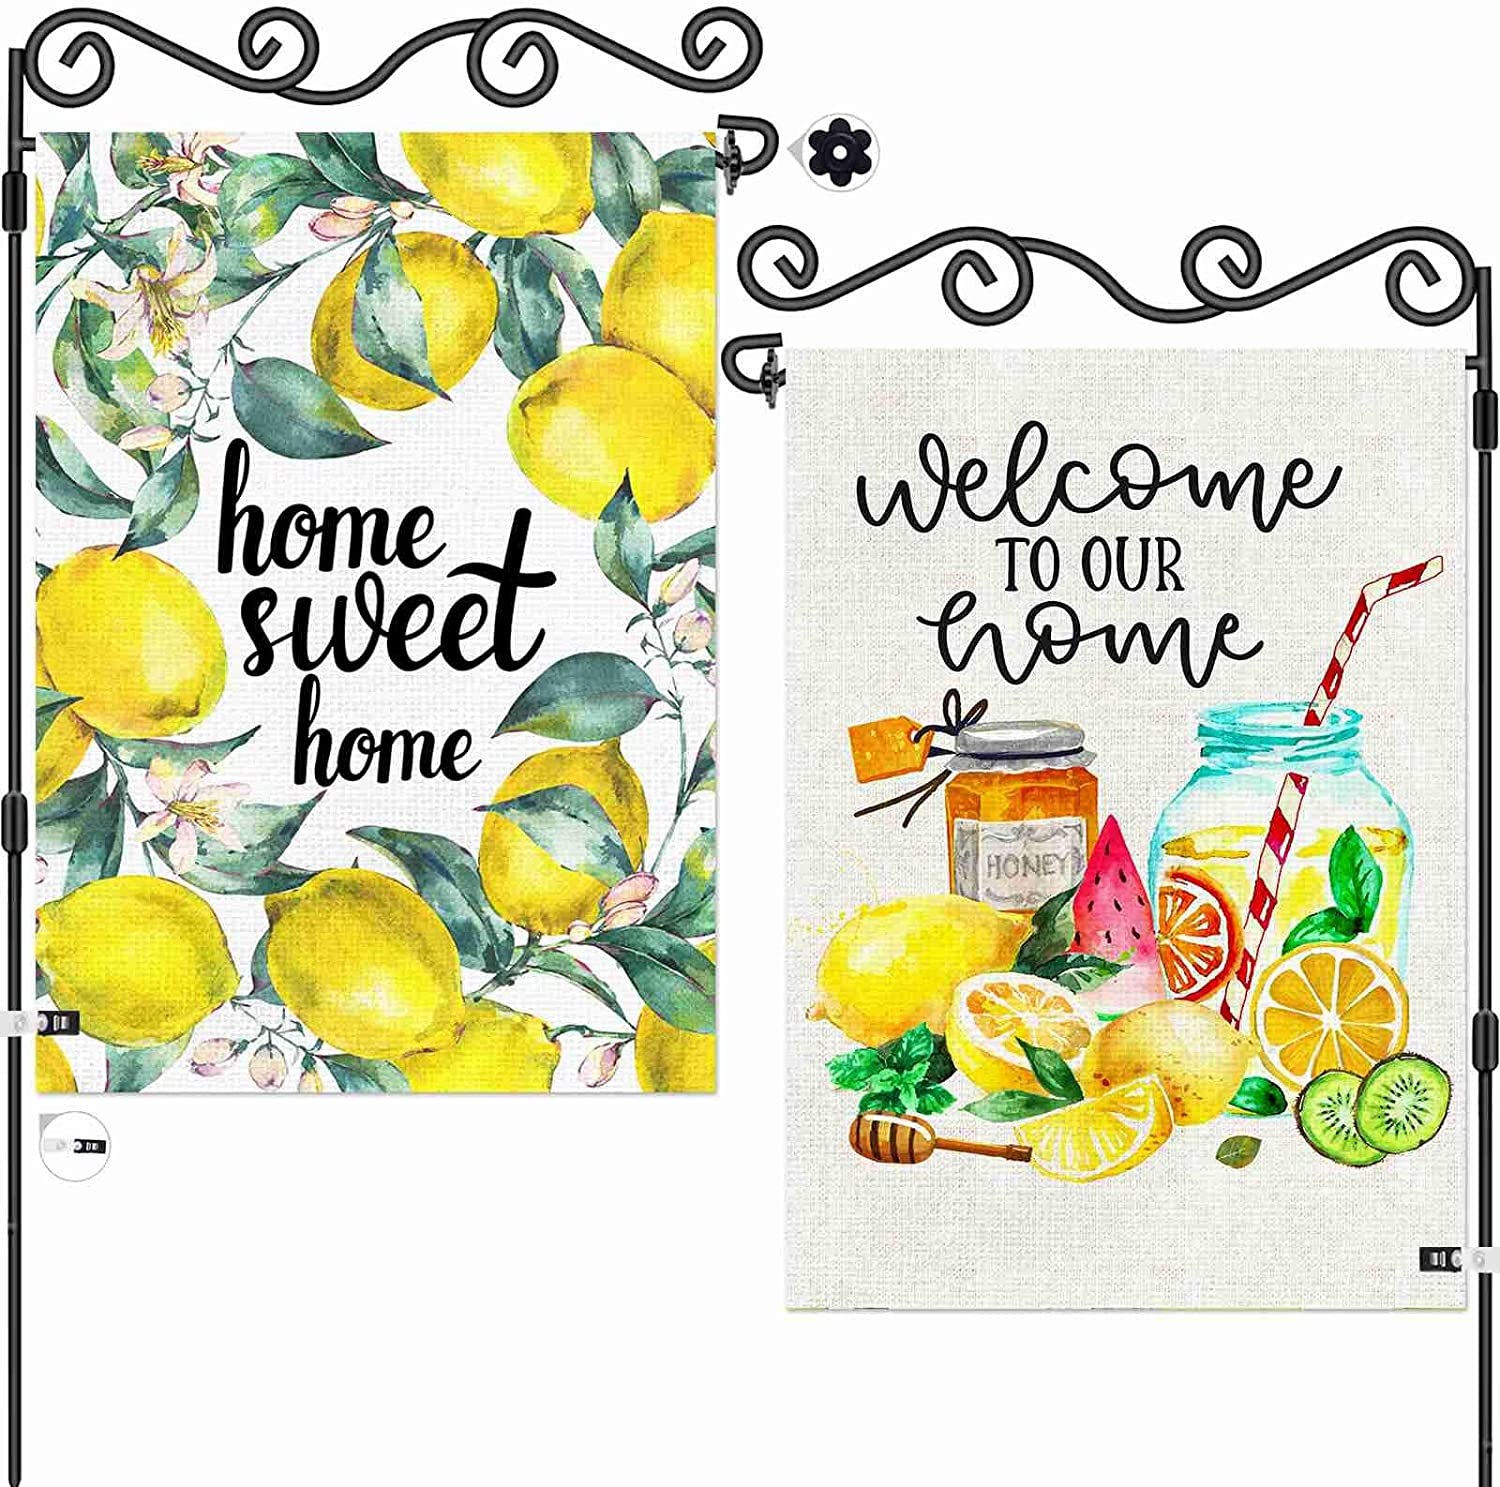 AOKDEER Welcome Lemon Wreath Small Garden Flag 12.5x18 Prime, 2-in-1 Double Sided Summer Burlap Garden Decor House Flags, Yard Signs Gift for Patio Lawn Outdoor Decor, Different Front and Back Flag